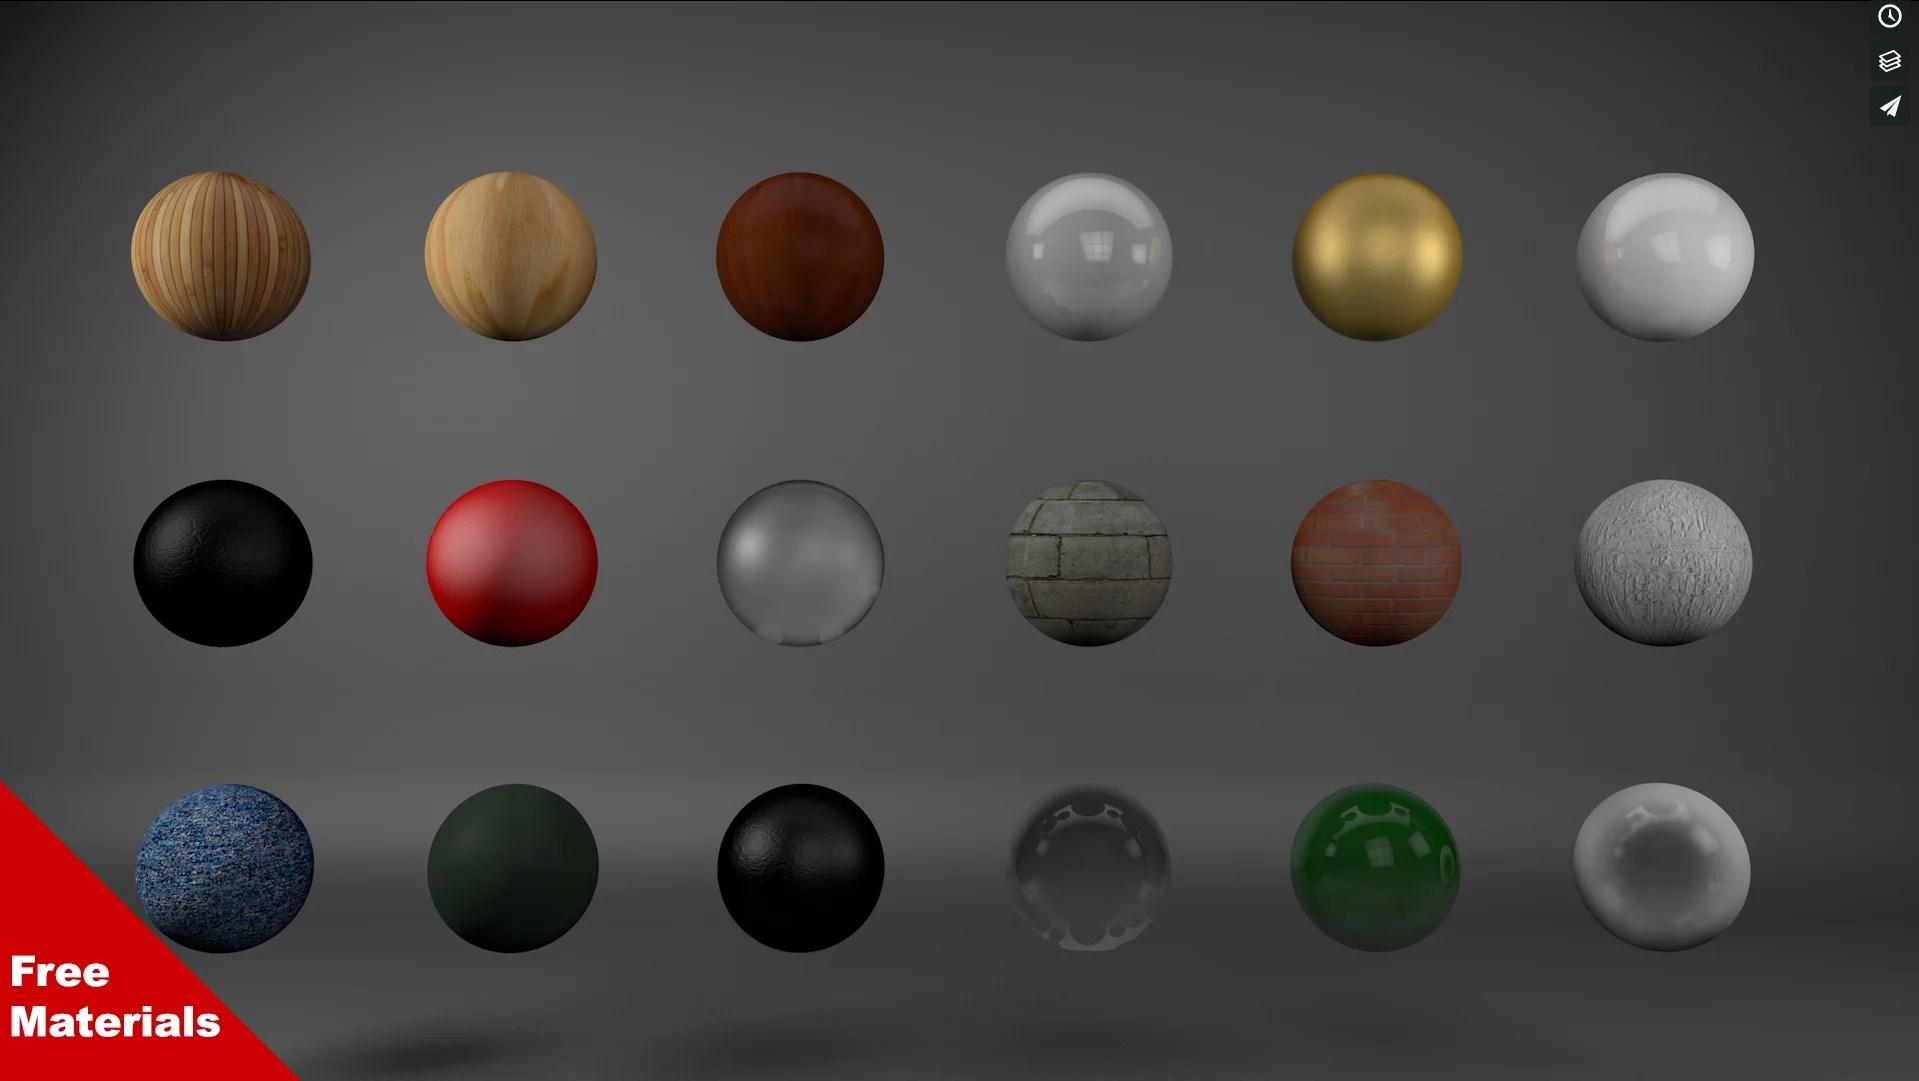 Free Cinema 4D Materials Pack - Free Cinema 4D Textures